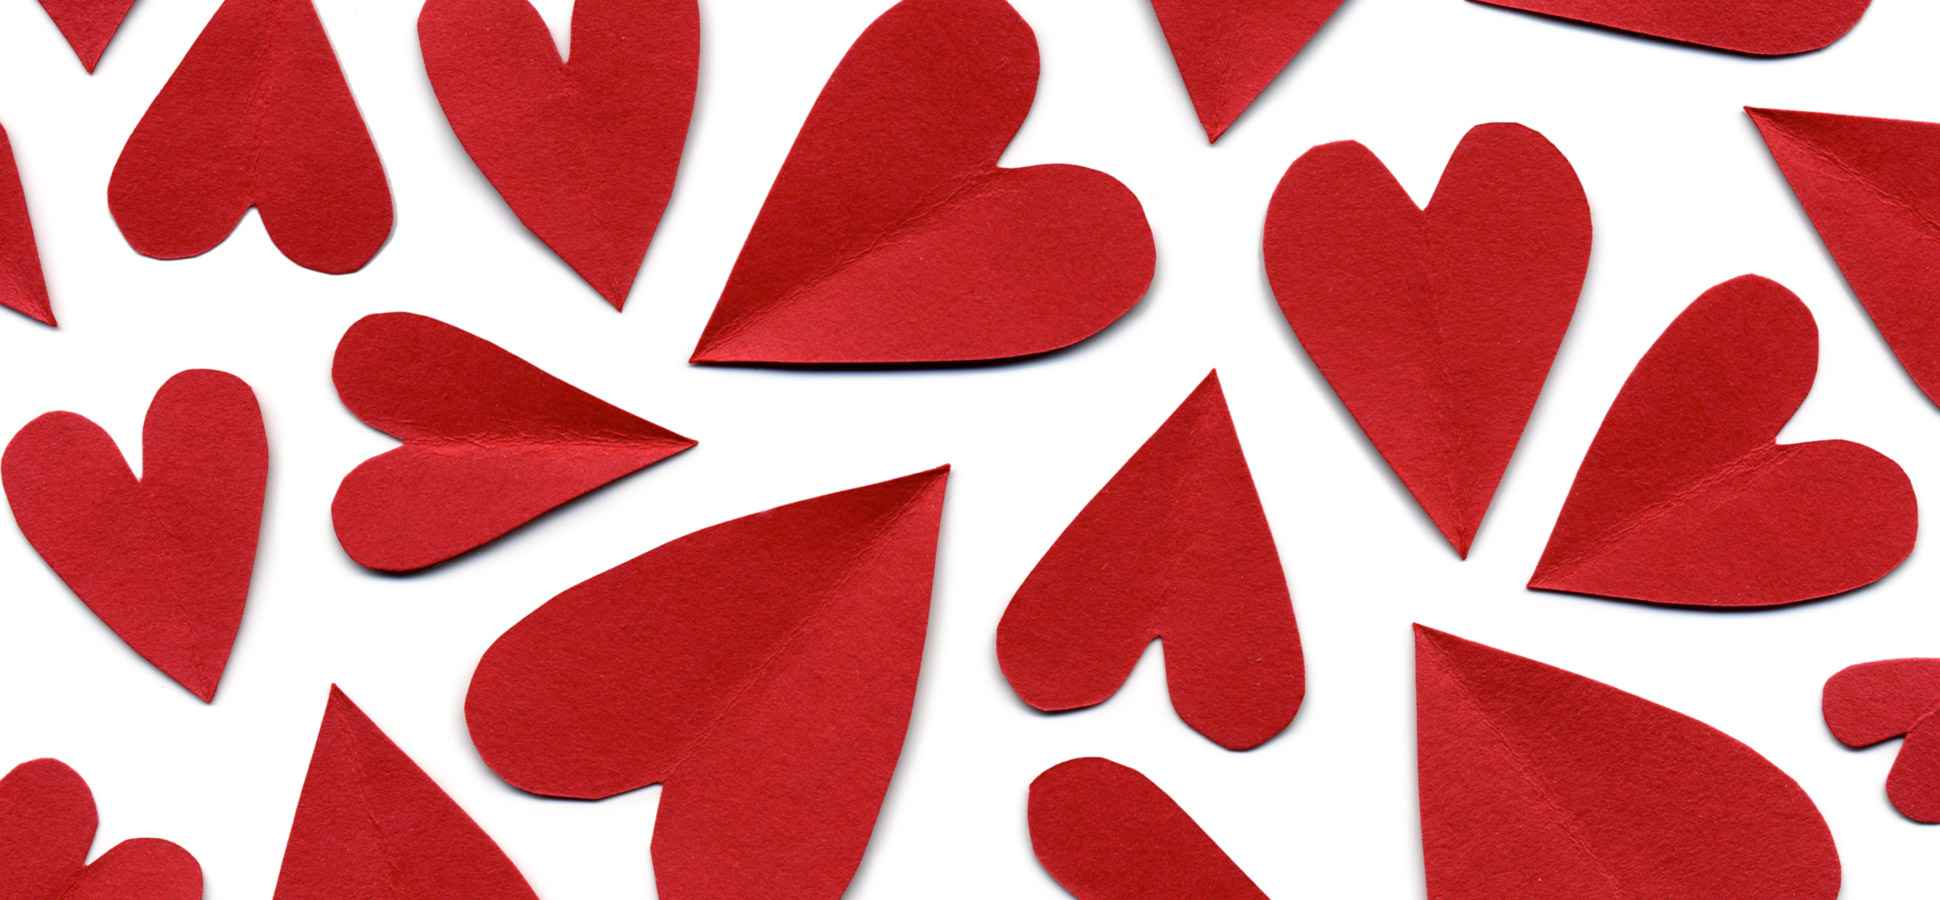 7 Remarkably Effective Ways to Lead With Your Heart